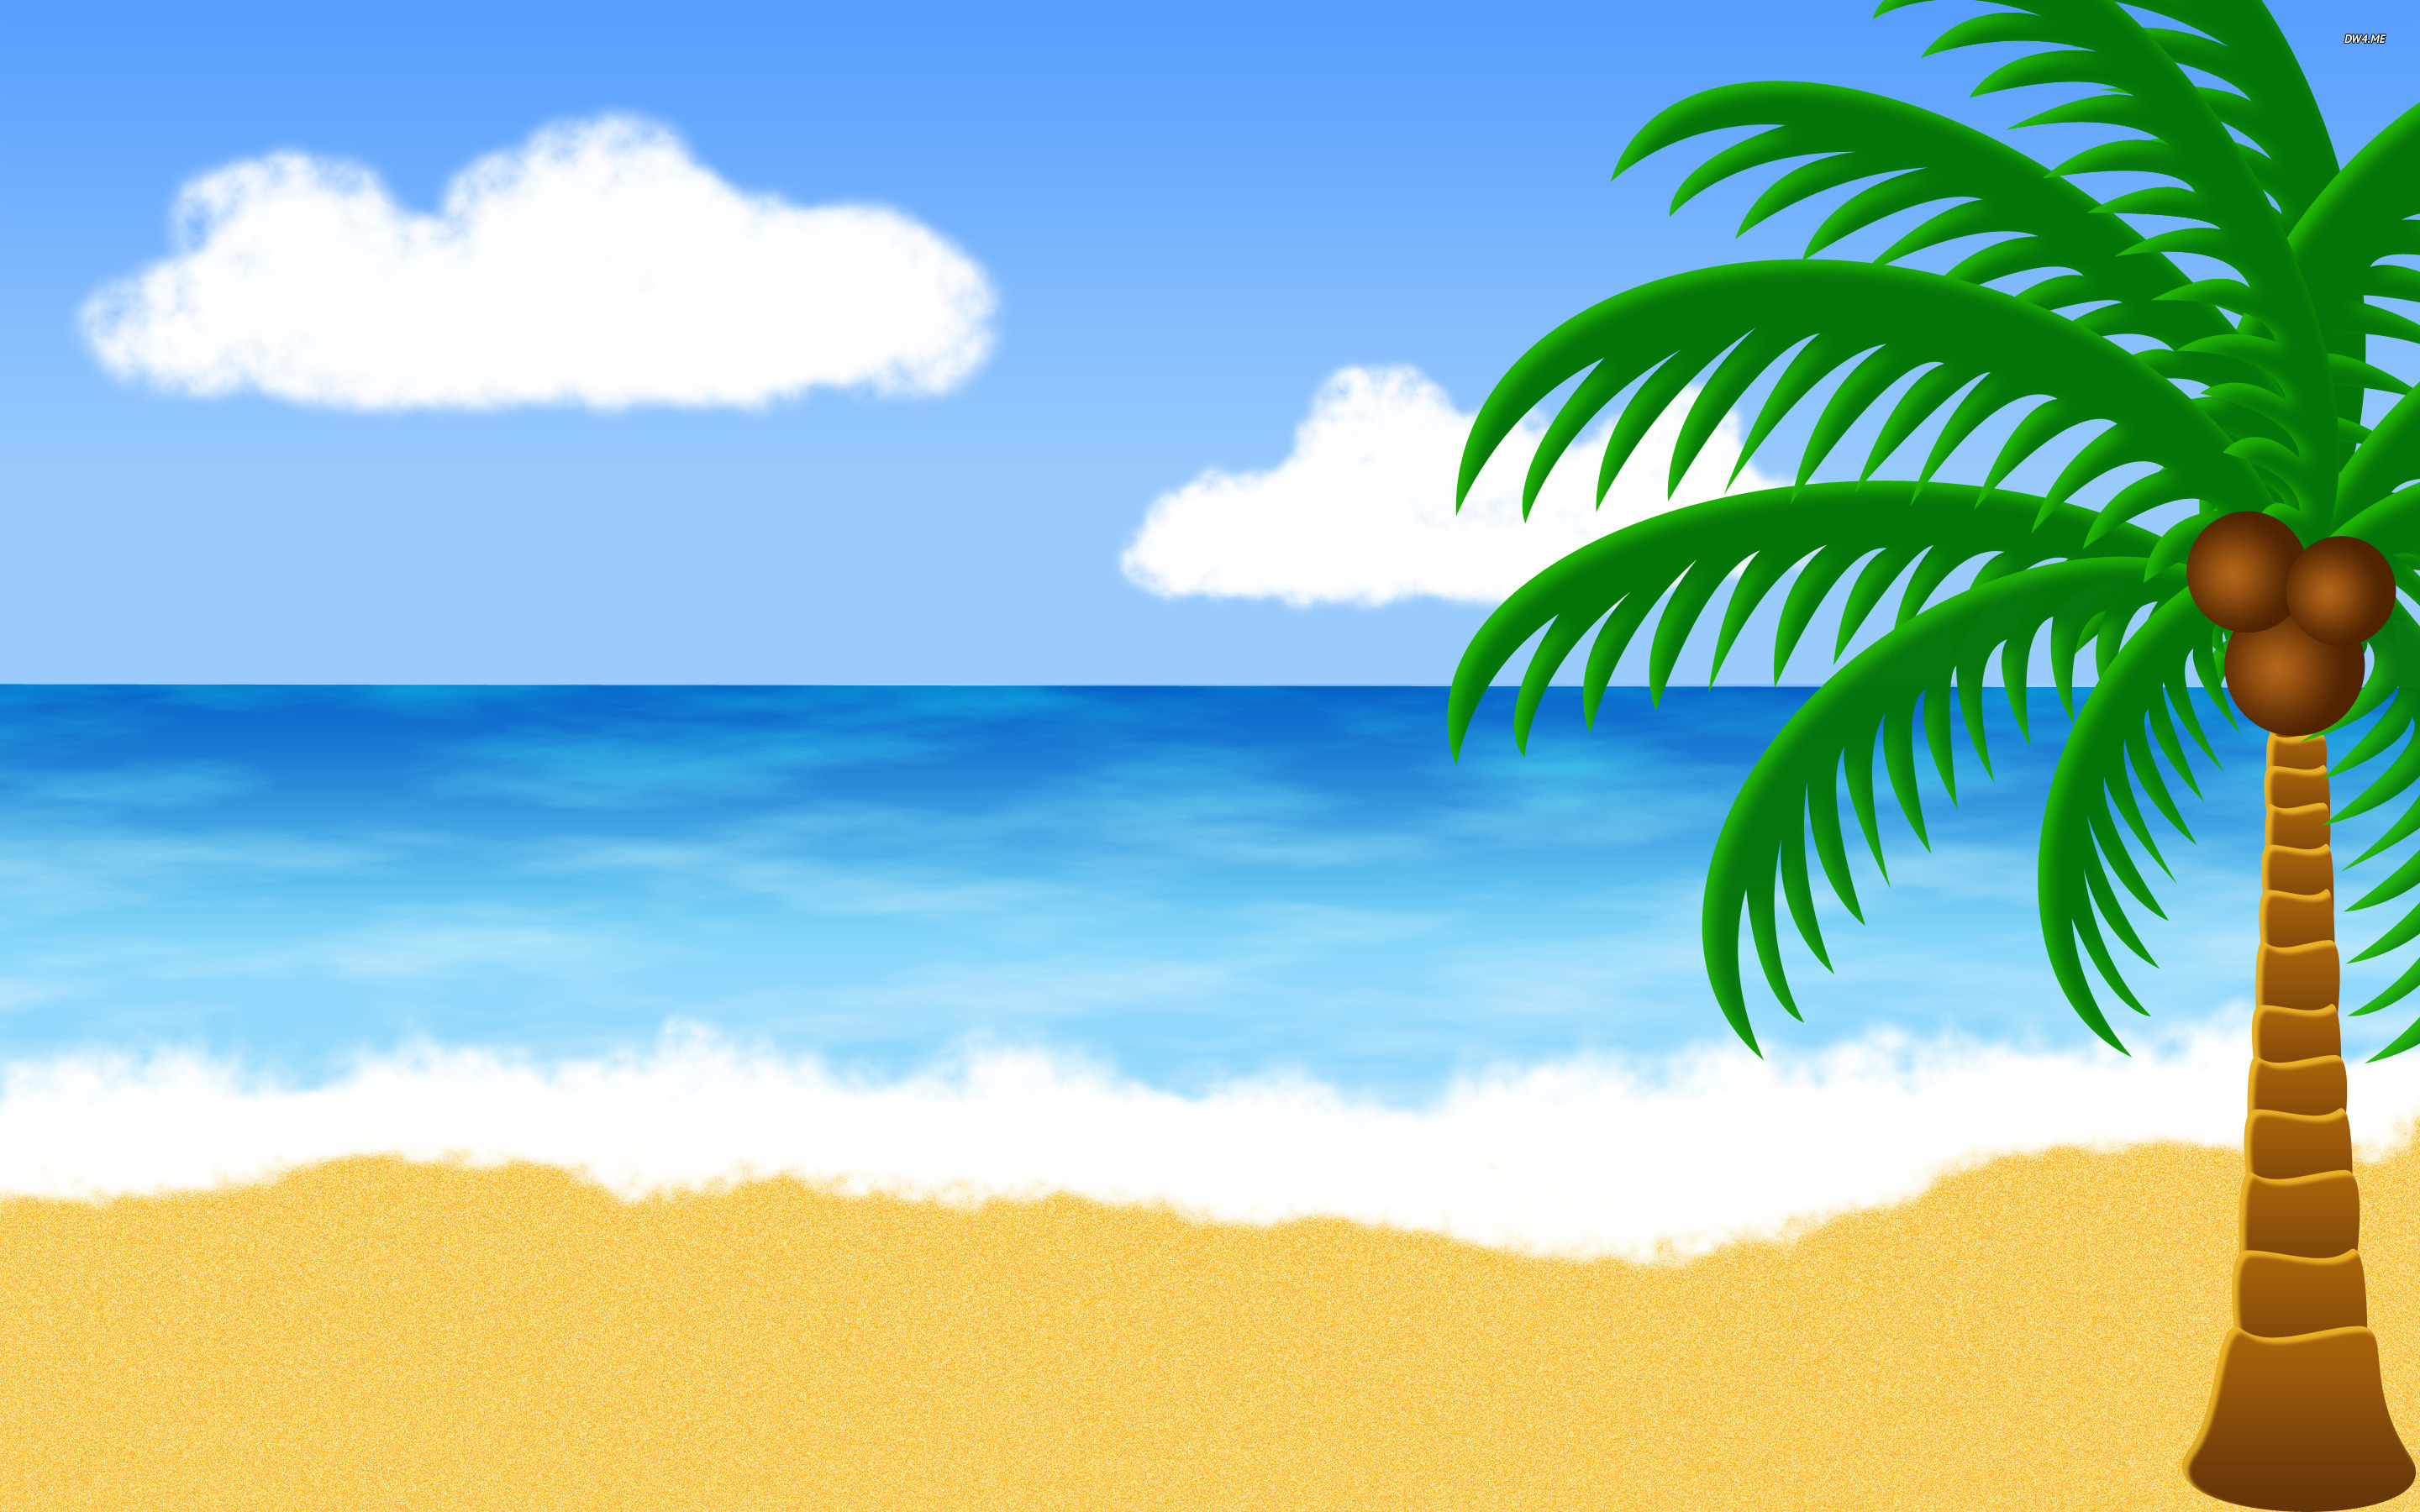 Beach clipart scenery. Seaside landscape pencil and